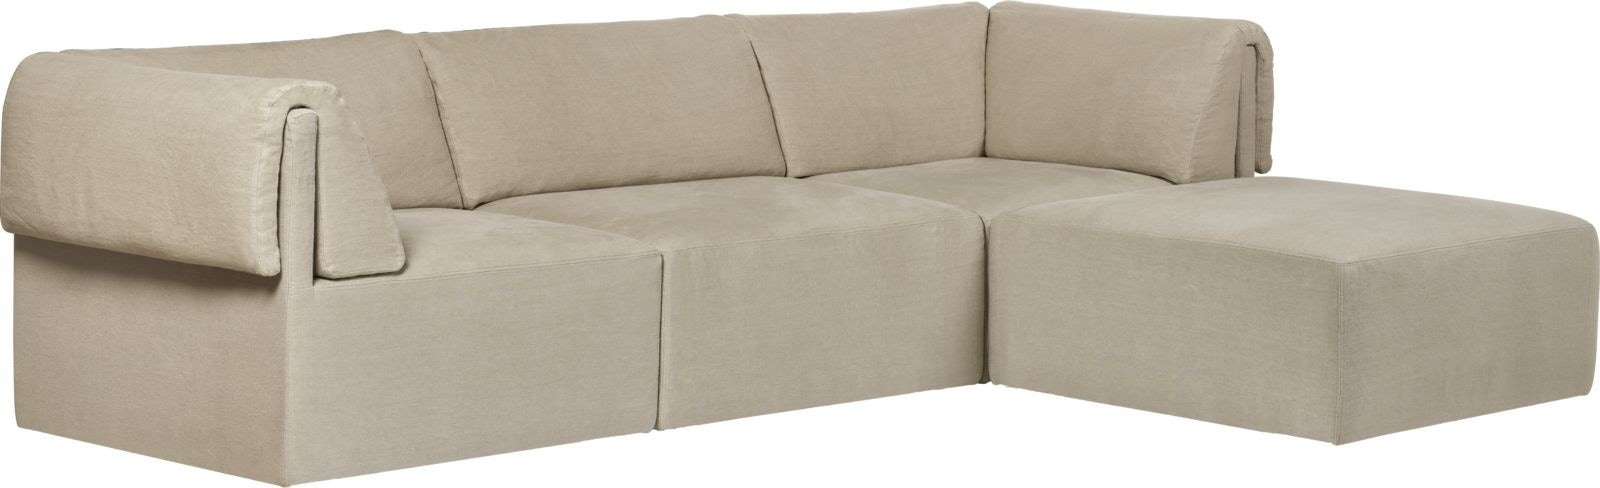 GUBI Wonder 3-Seater Sofa with Chaise Longue (Fully Upholstered)